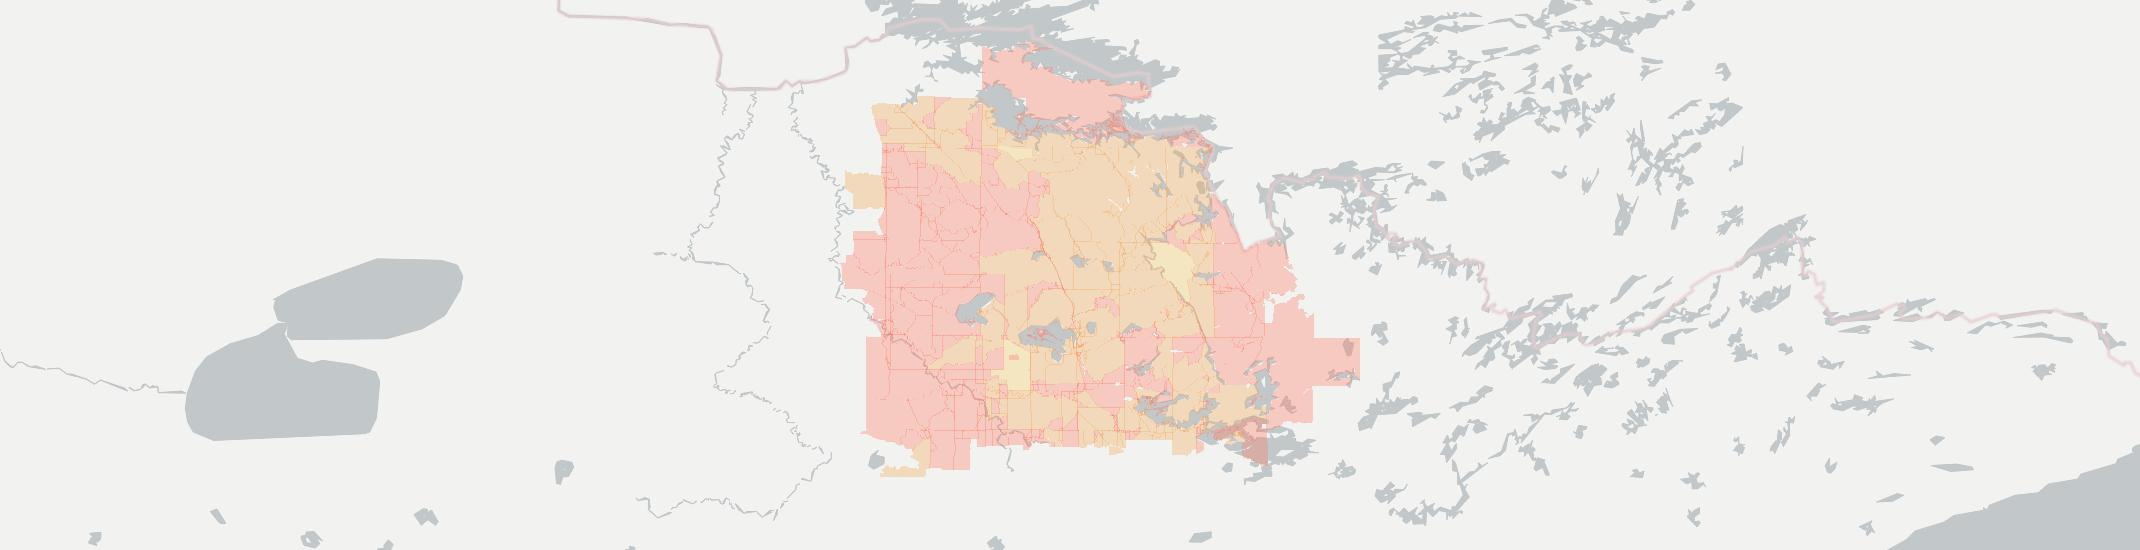 Orr Internet Competition Map. Click for interactive map.